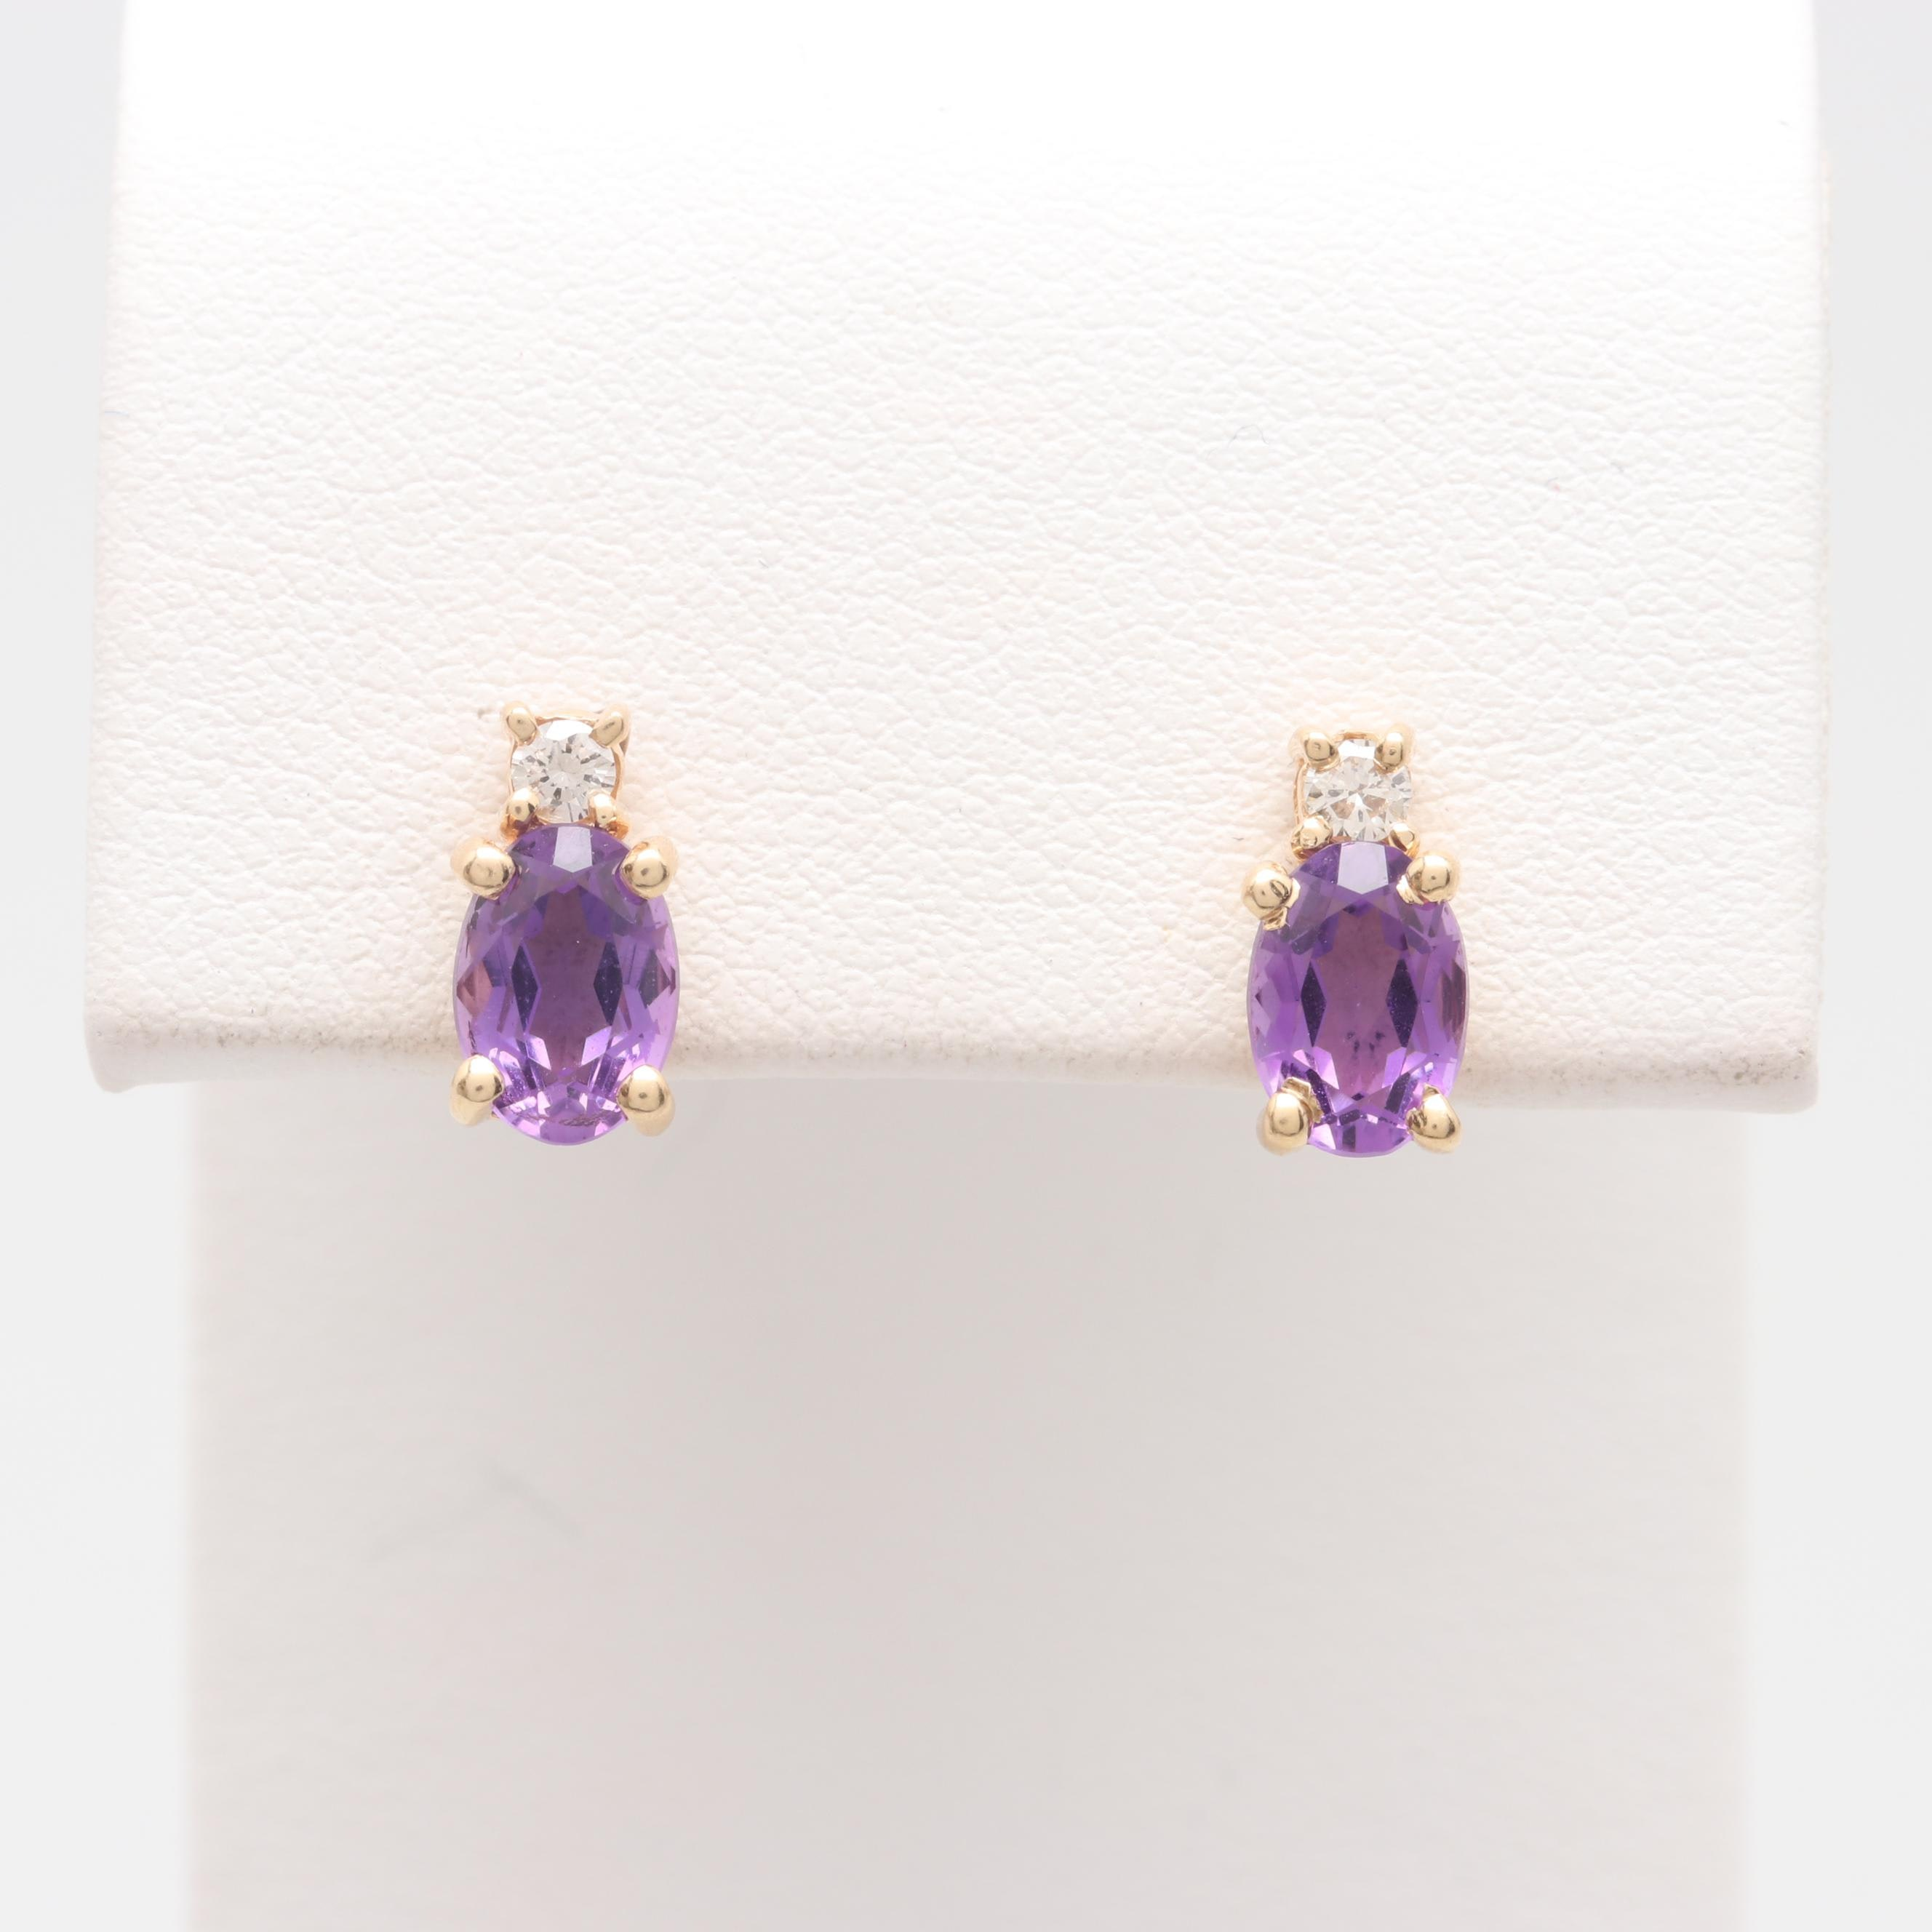 14K and 18K Yellow Gold Amethyst and Diamond Stud Earrings